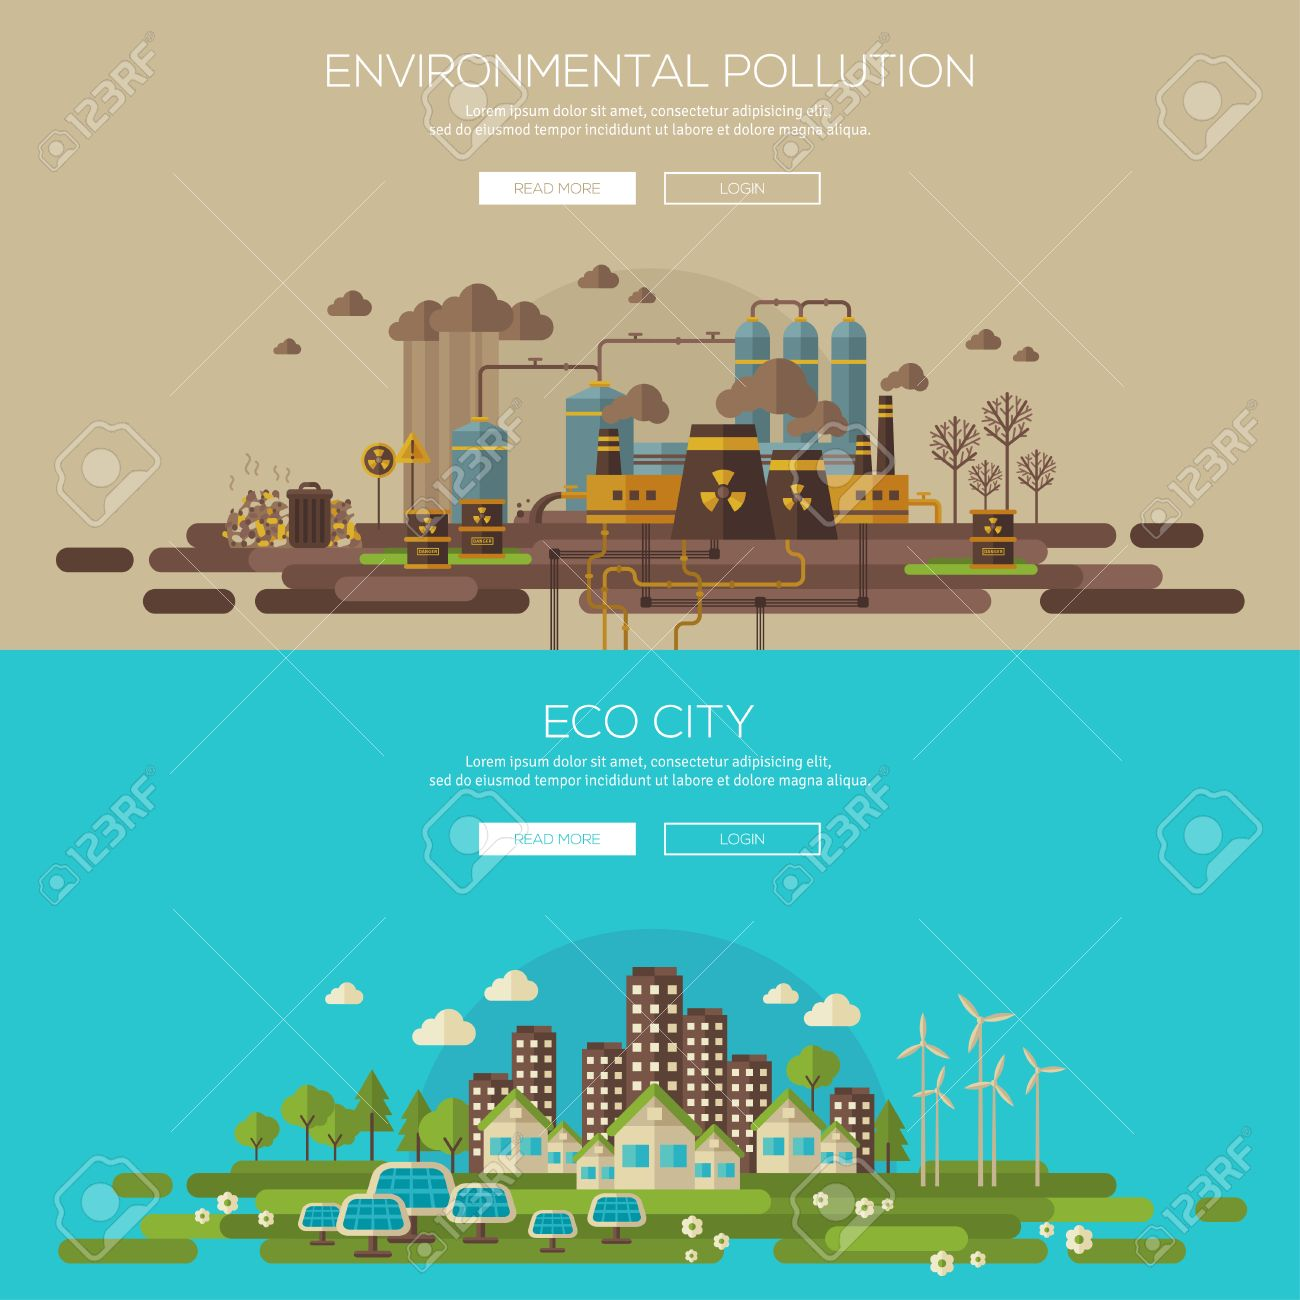 Green eco city with sustainable architecture and environmental pollution by factory toxic waste. Vector illustration banners set. Web banner and promotional material concept. Eco Technology. - 40270648